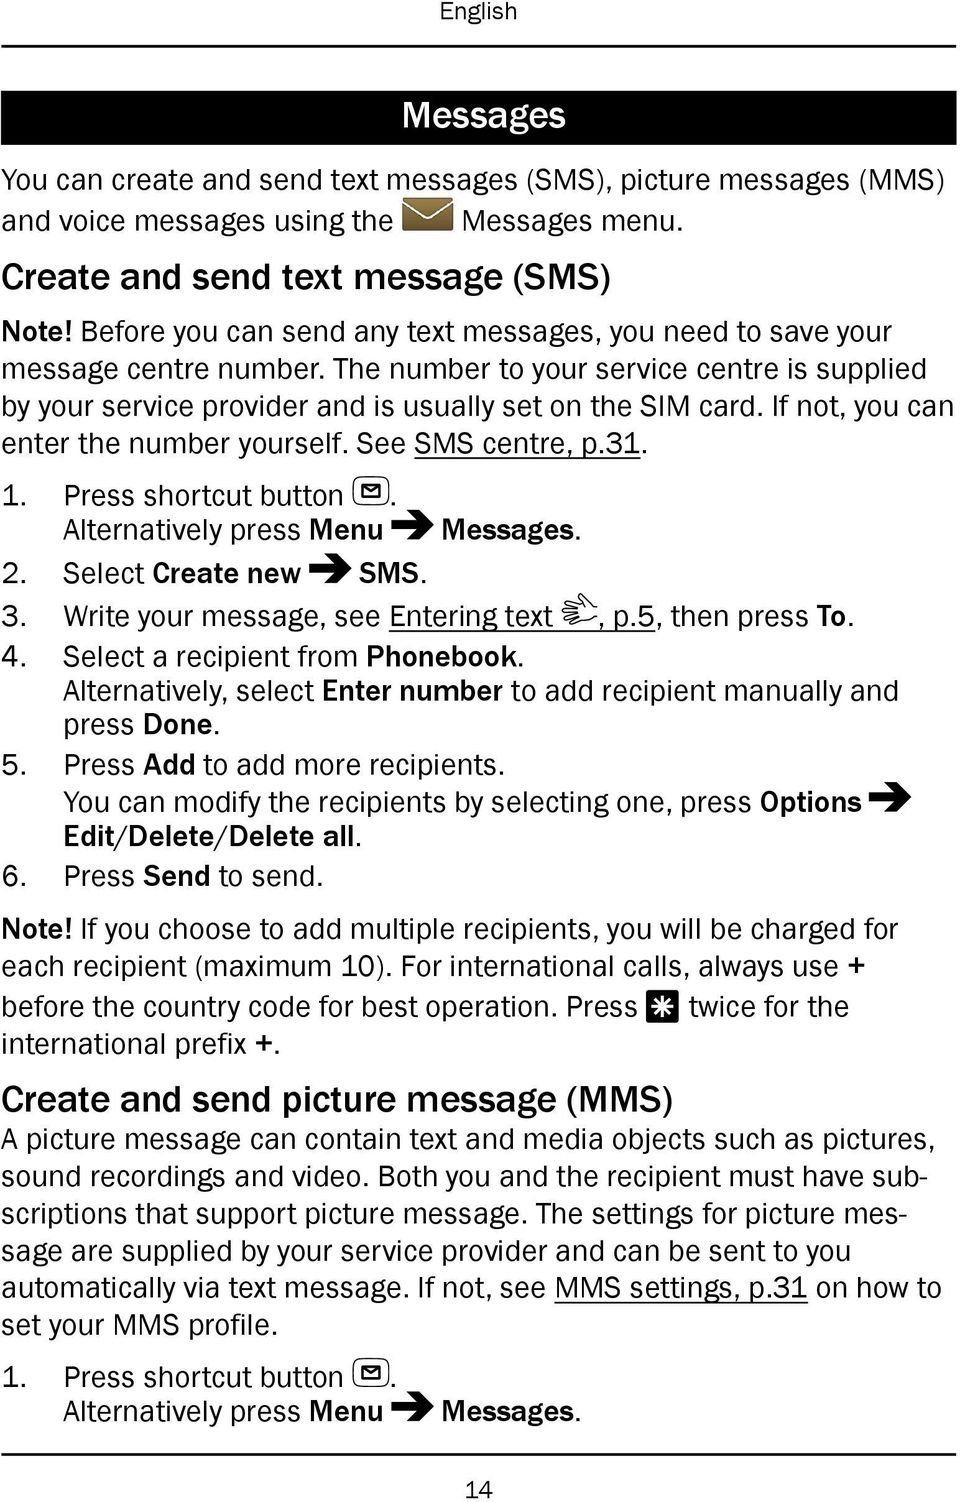 If not, you can enter the number yourself. See SMS centre, p.31. 1. Press shortcut button. Alternatively press Menu Messages. 2. Select Create new SMS. 3. Write your message, see Entering text, p.